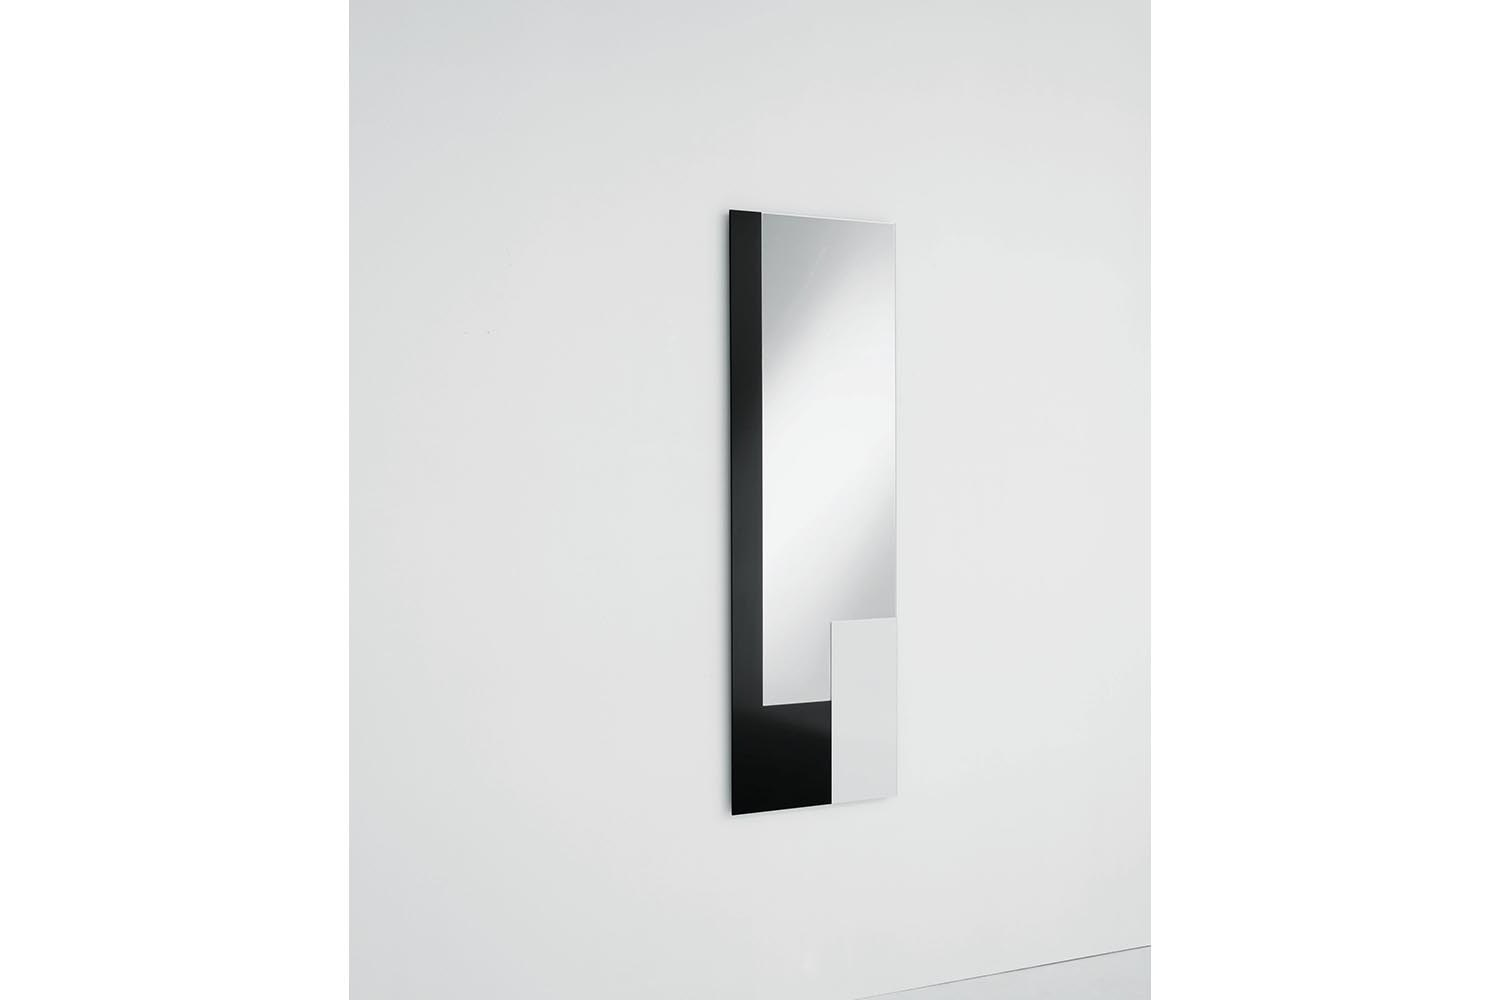 Ratio Mirror by Nanda Vigo for Glas Italia